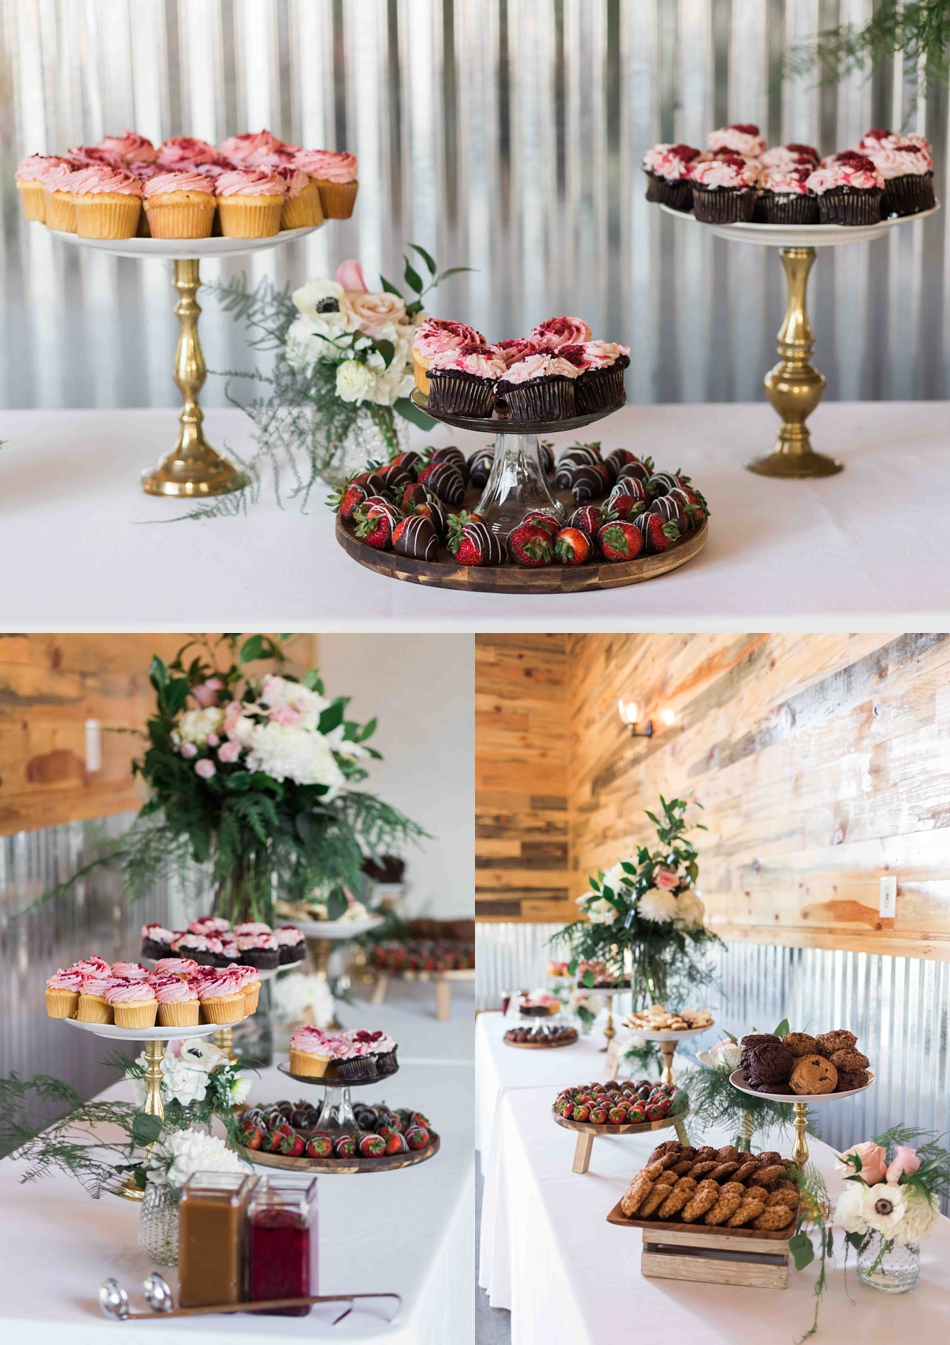 Wonderful desserts at Twin Willow Gardens in Snohomish. Photographs by Joanna Monger Photography, Snohomish's Best Wedding Photographer.